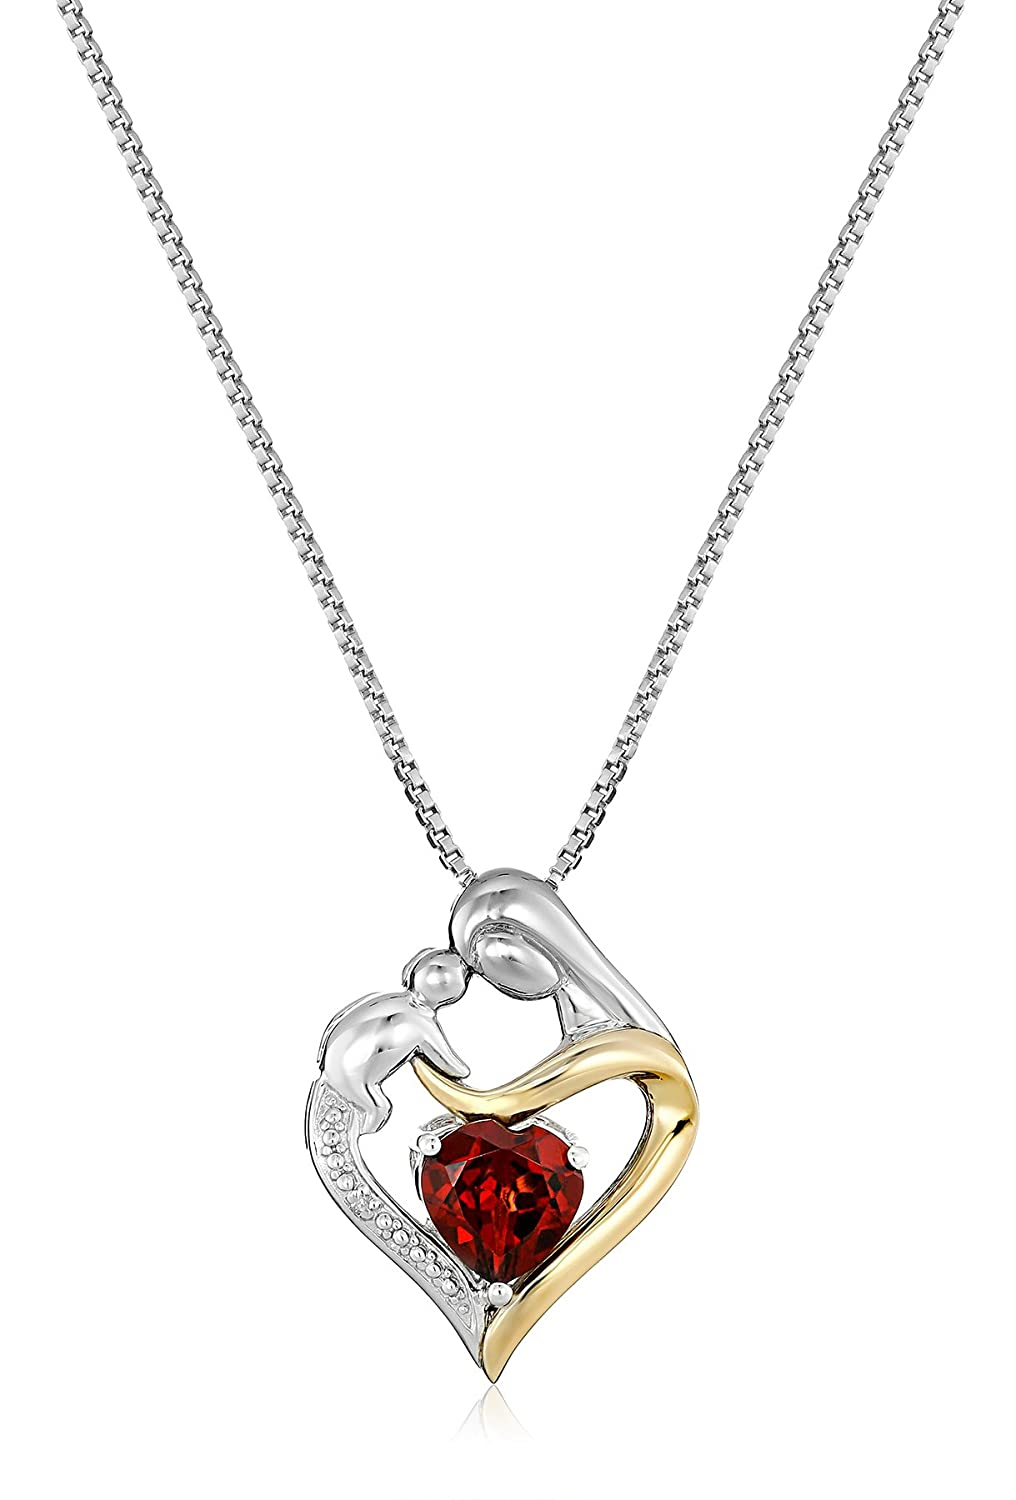 Sterling Silver and 14k Gold Heart Mom Pendant Necklace 18